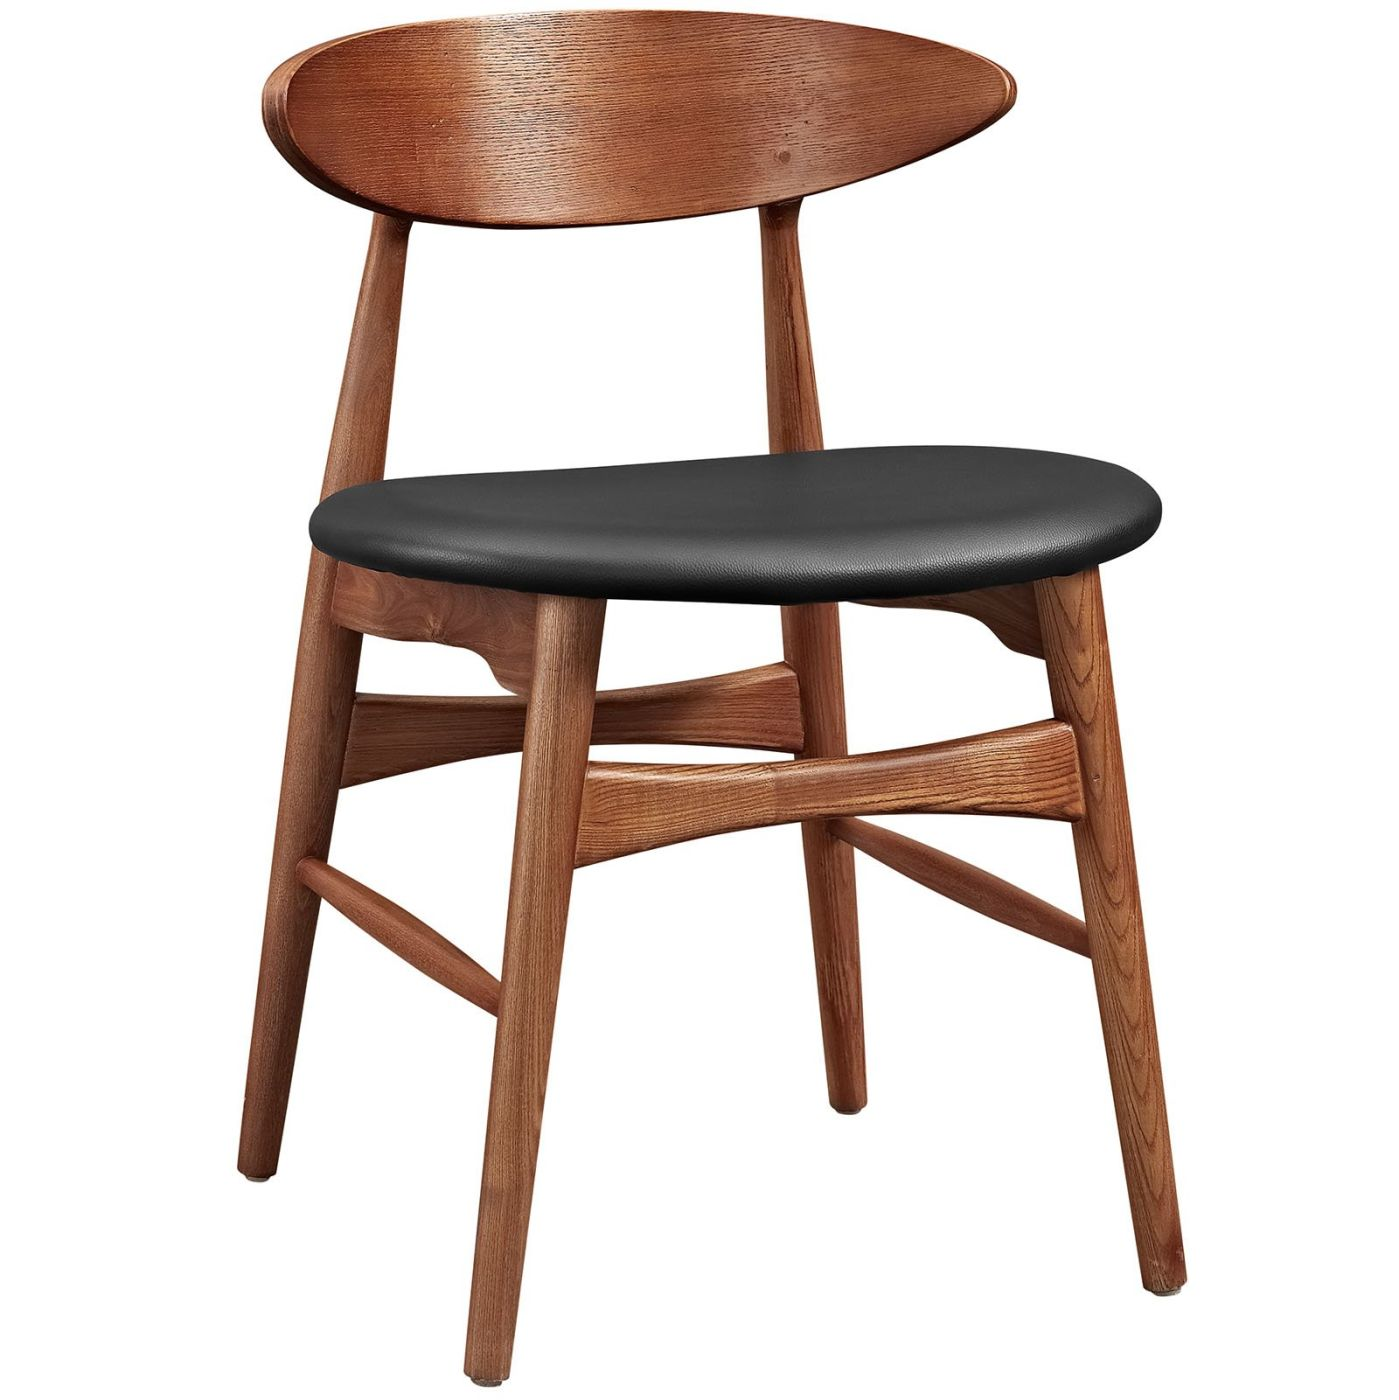 Peachy Modway Dining Chairs On Sale Eei 2280 Wal Blk Ebee Mid Century Modern Dining Chair Walnut Only Only 281 05 At Contemporary Furniture Warehouse Creativecarmelina Interior Chair Design Creativecarmelinacom